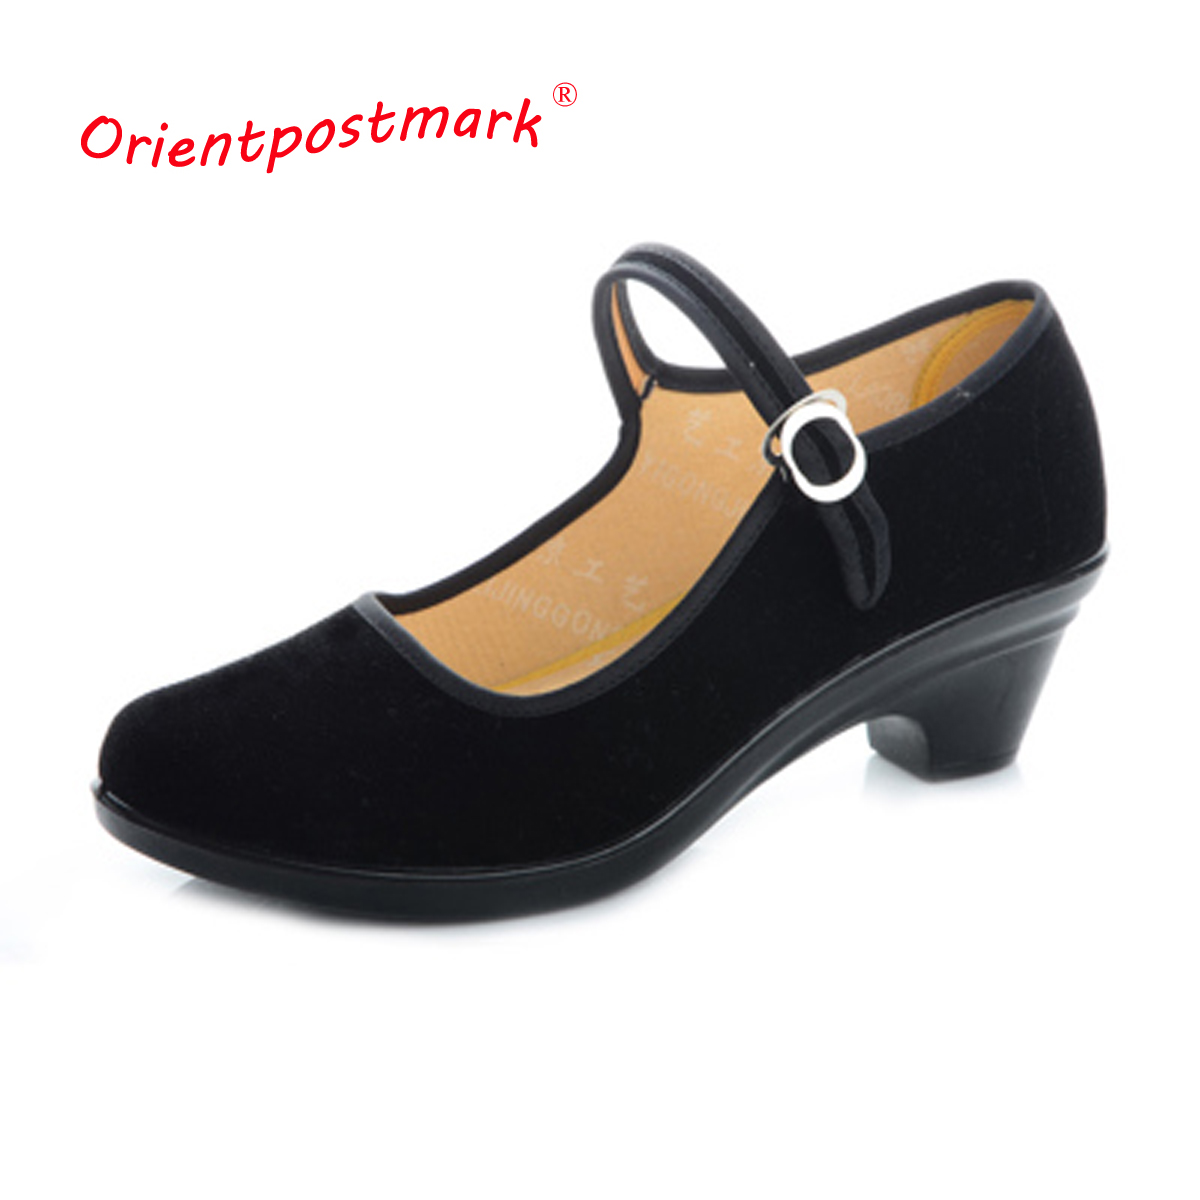 Sweet Loafers Women Heels Shoes for Spring Women Ballet Shoes Breathable Heels Shoes Autumn Shoes Orientpostmark sweet loafers women heels shoes for spring women ballet shoes breathable heels shoes autumn shoes orientpostmark